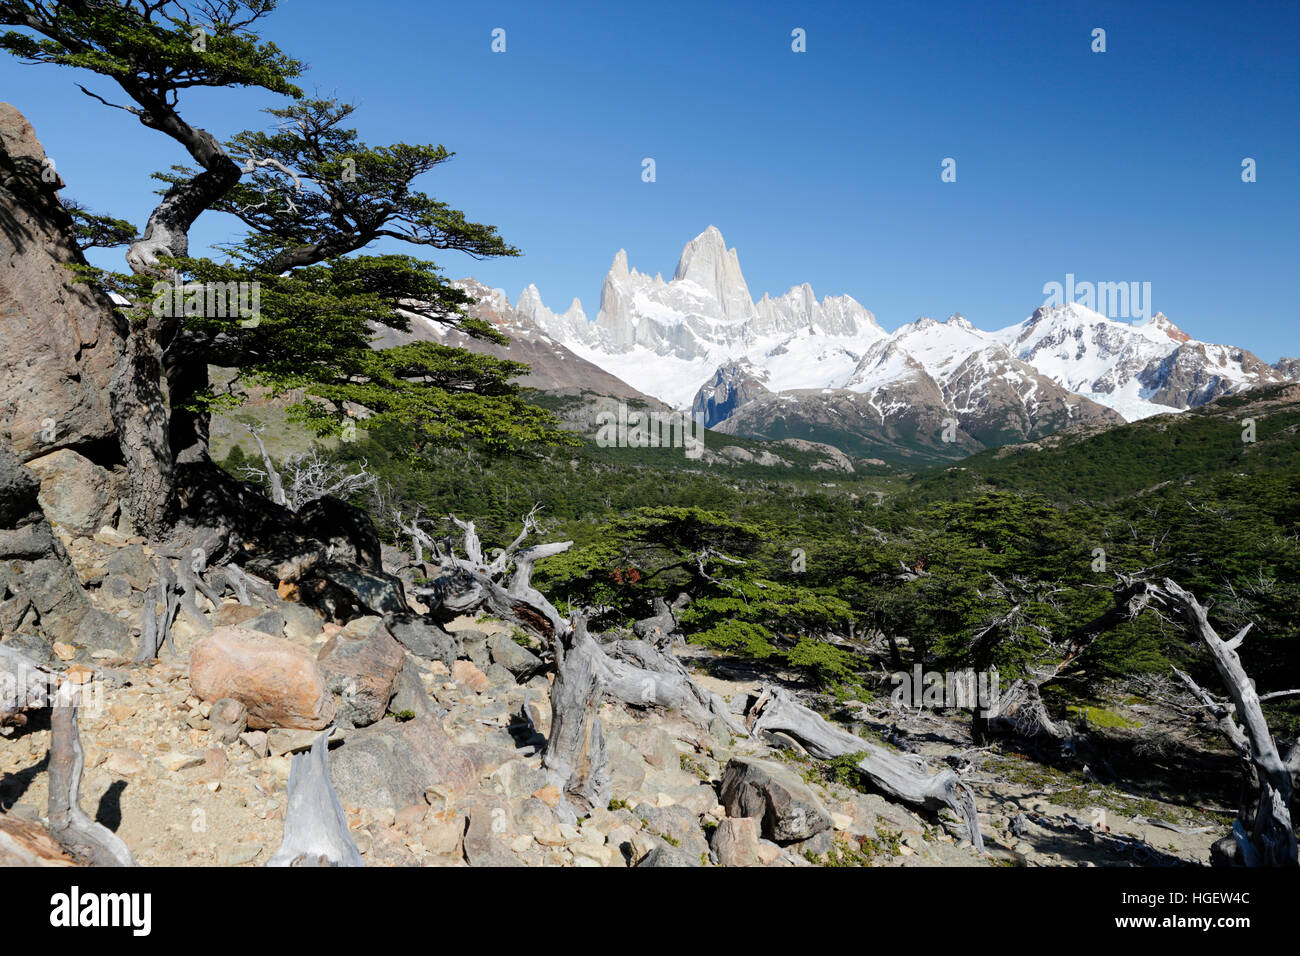 View of Mount Fitz Roy on Laguna de Los Tres trail, El Chalten, Patagonia, Argentina, South America - Stock Image